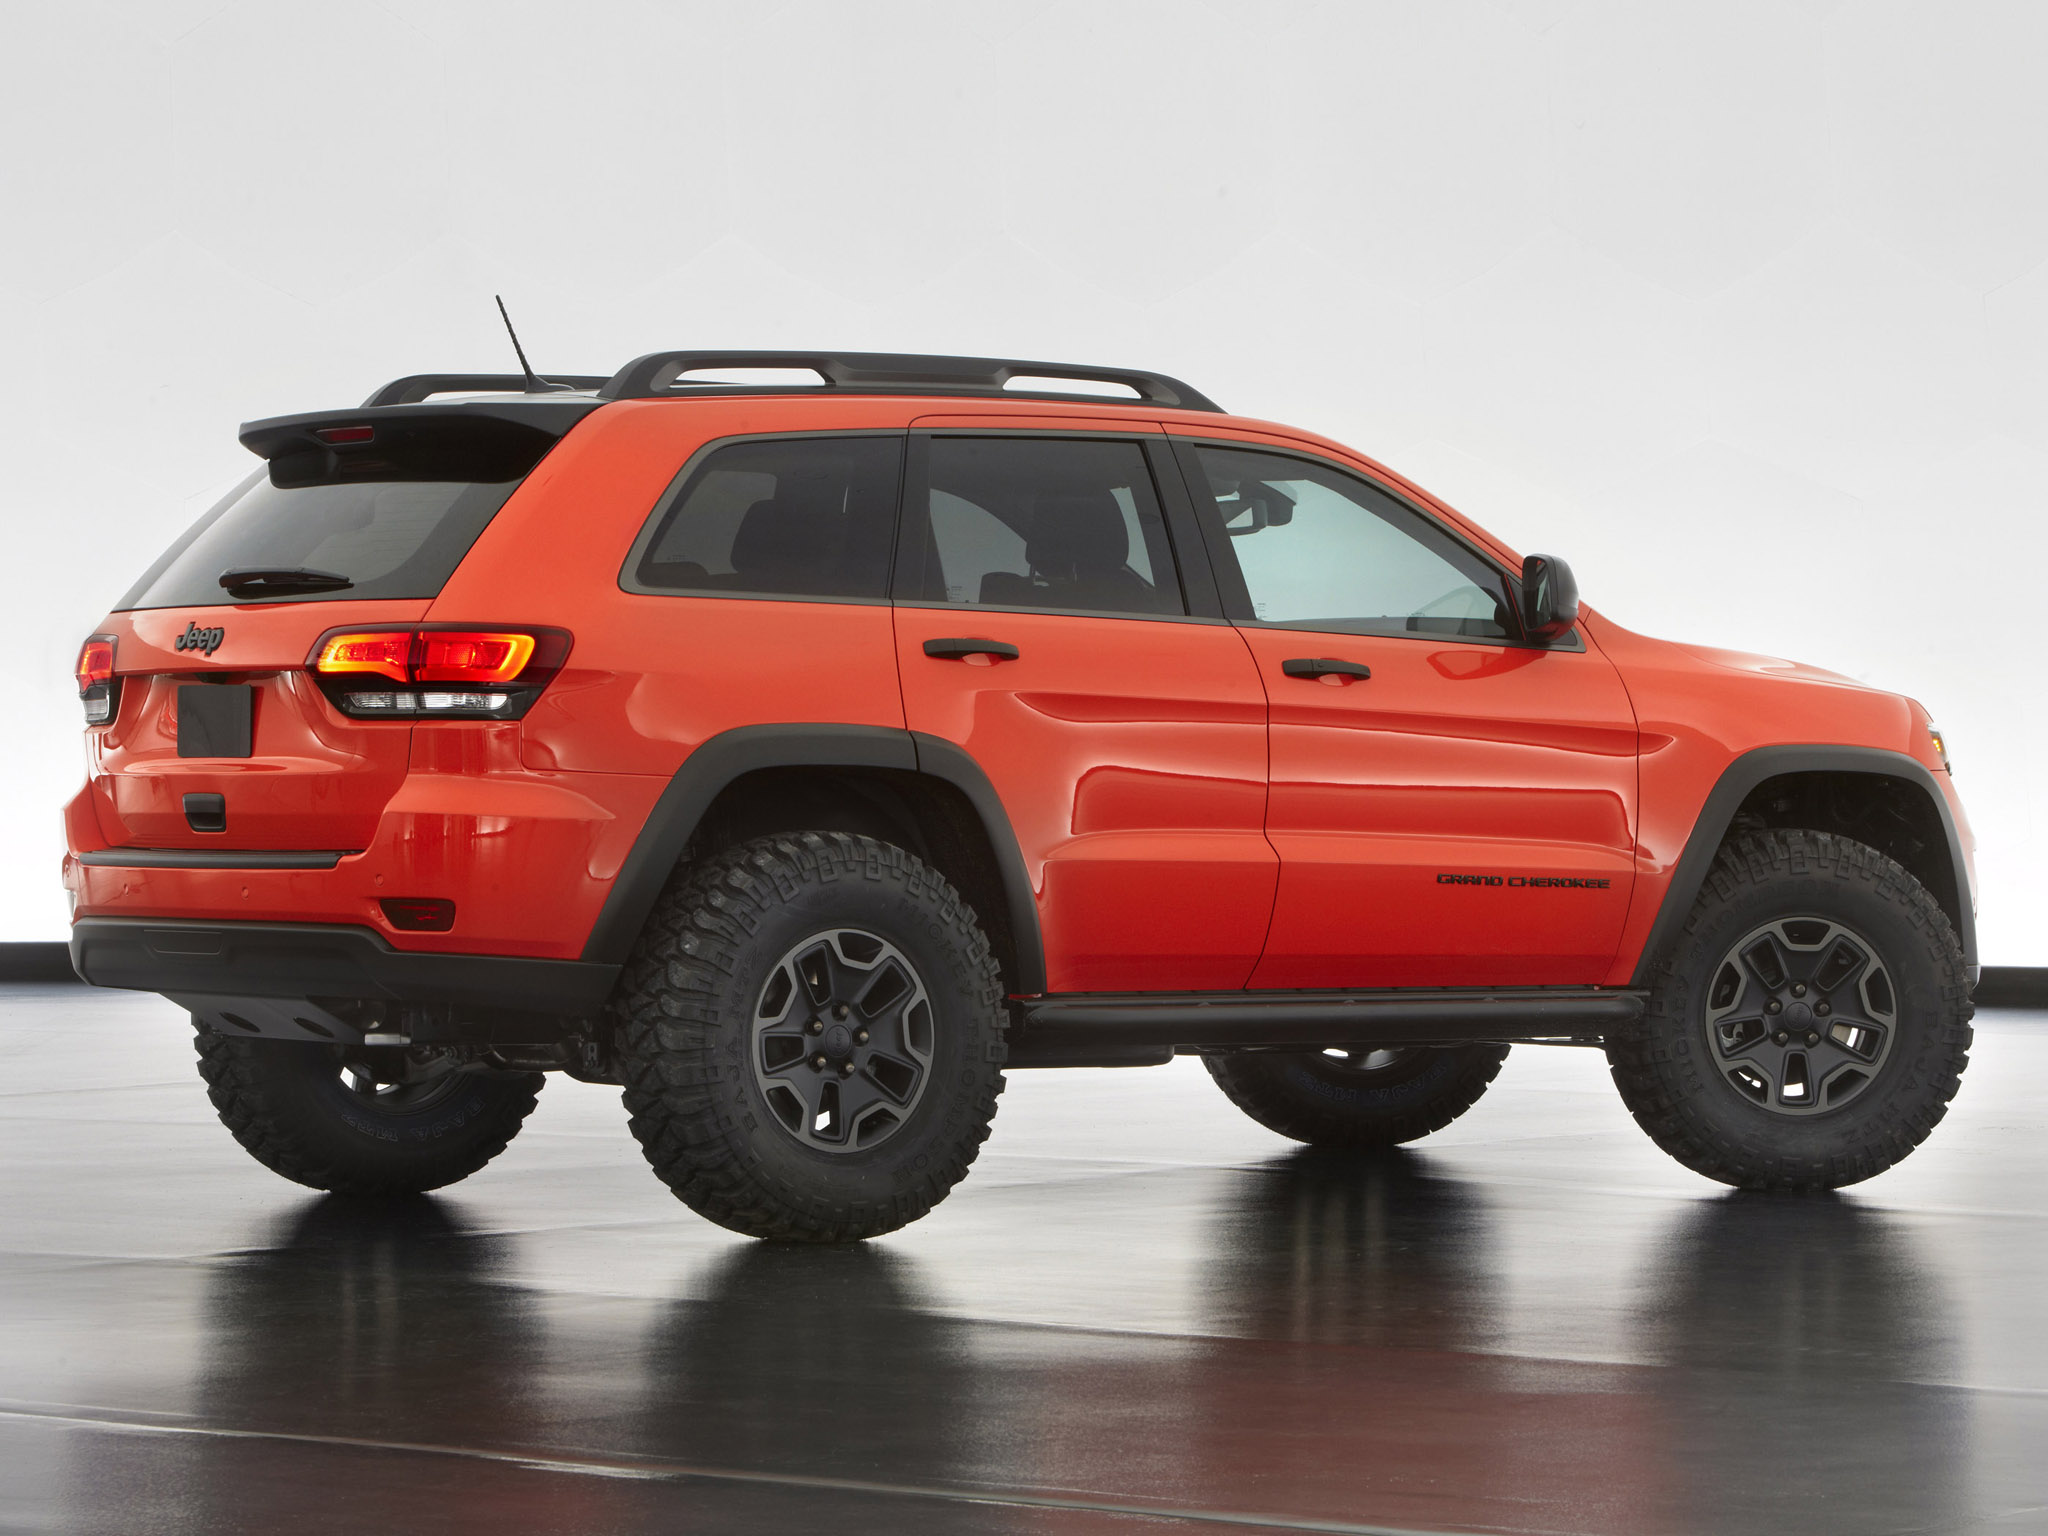 2013 jeep grand cherokee trailhawk offroad 4x4 concept d. Black Bedroom Furniture Sets. Home Design Ideas